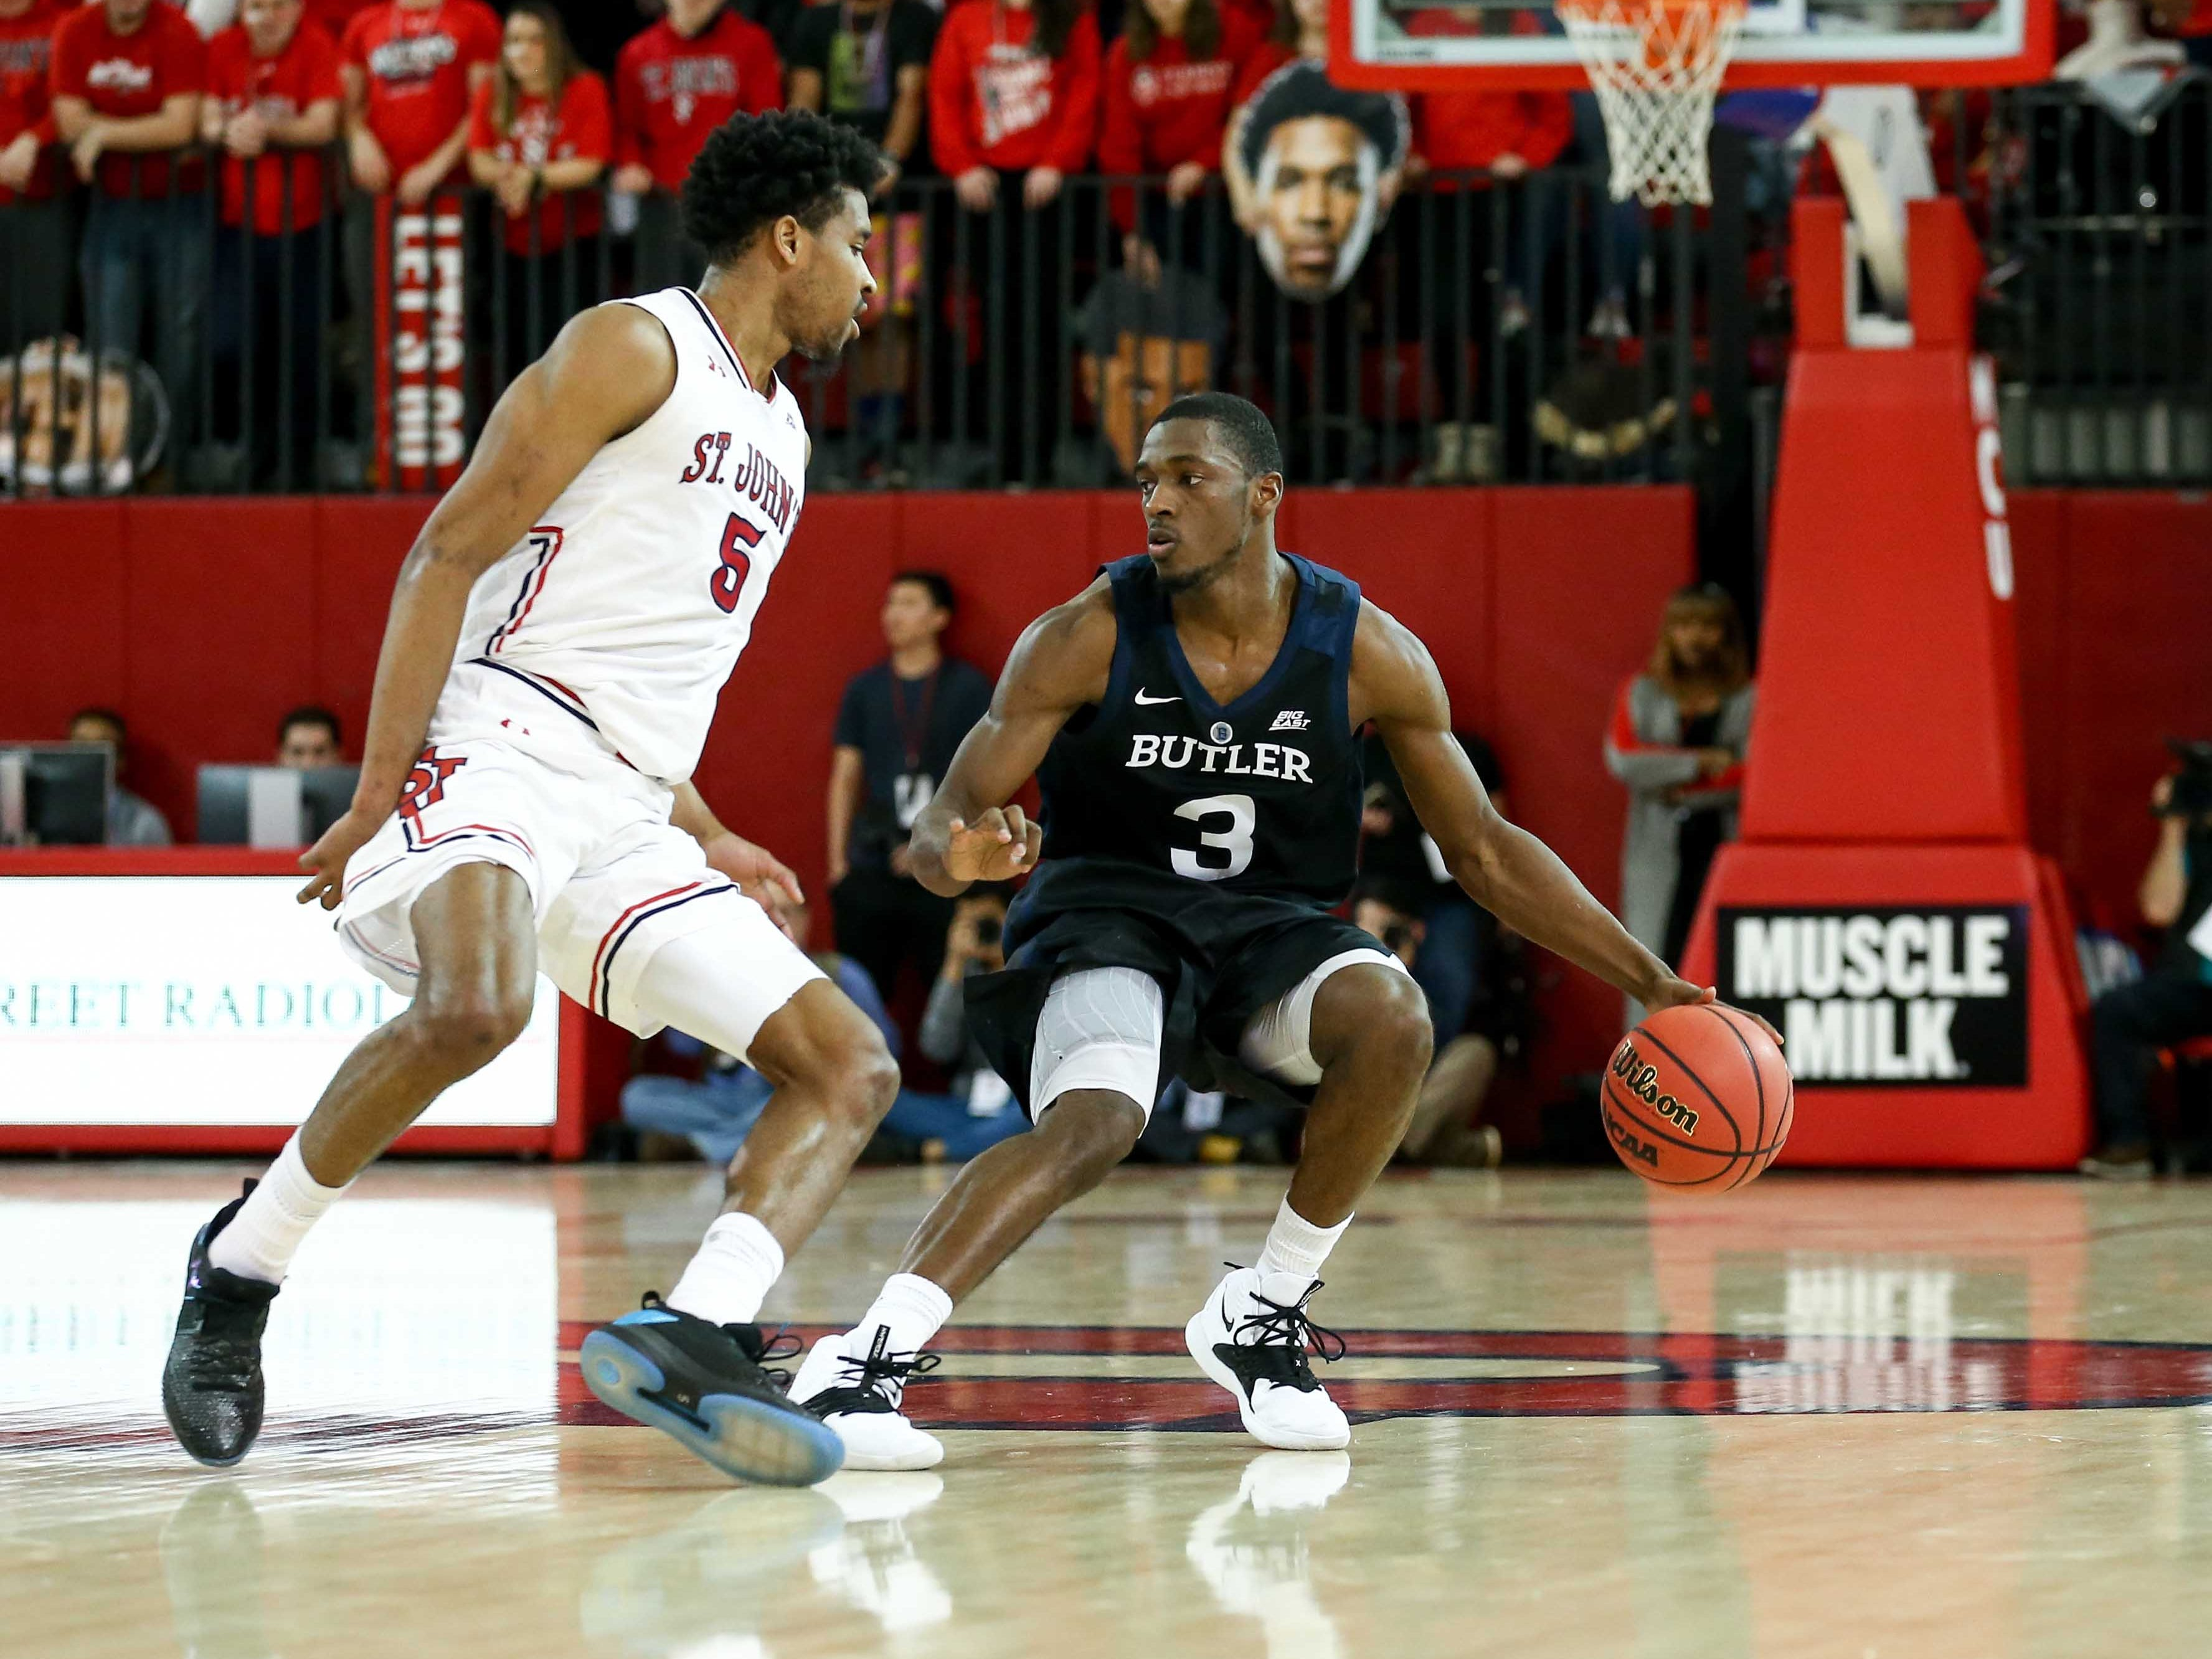 Butler Insider: Strategy at end doesn't work in Bulldogs' OT loss at St. John's